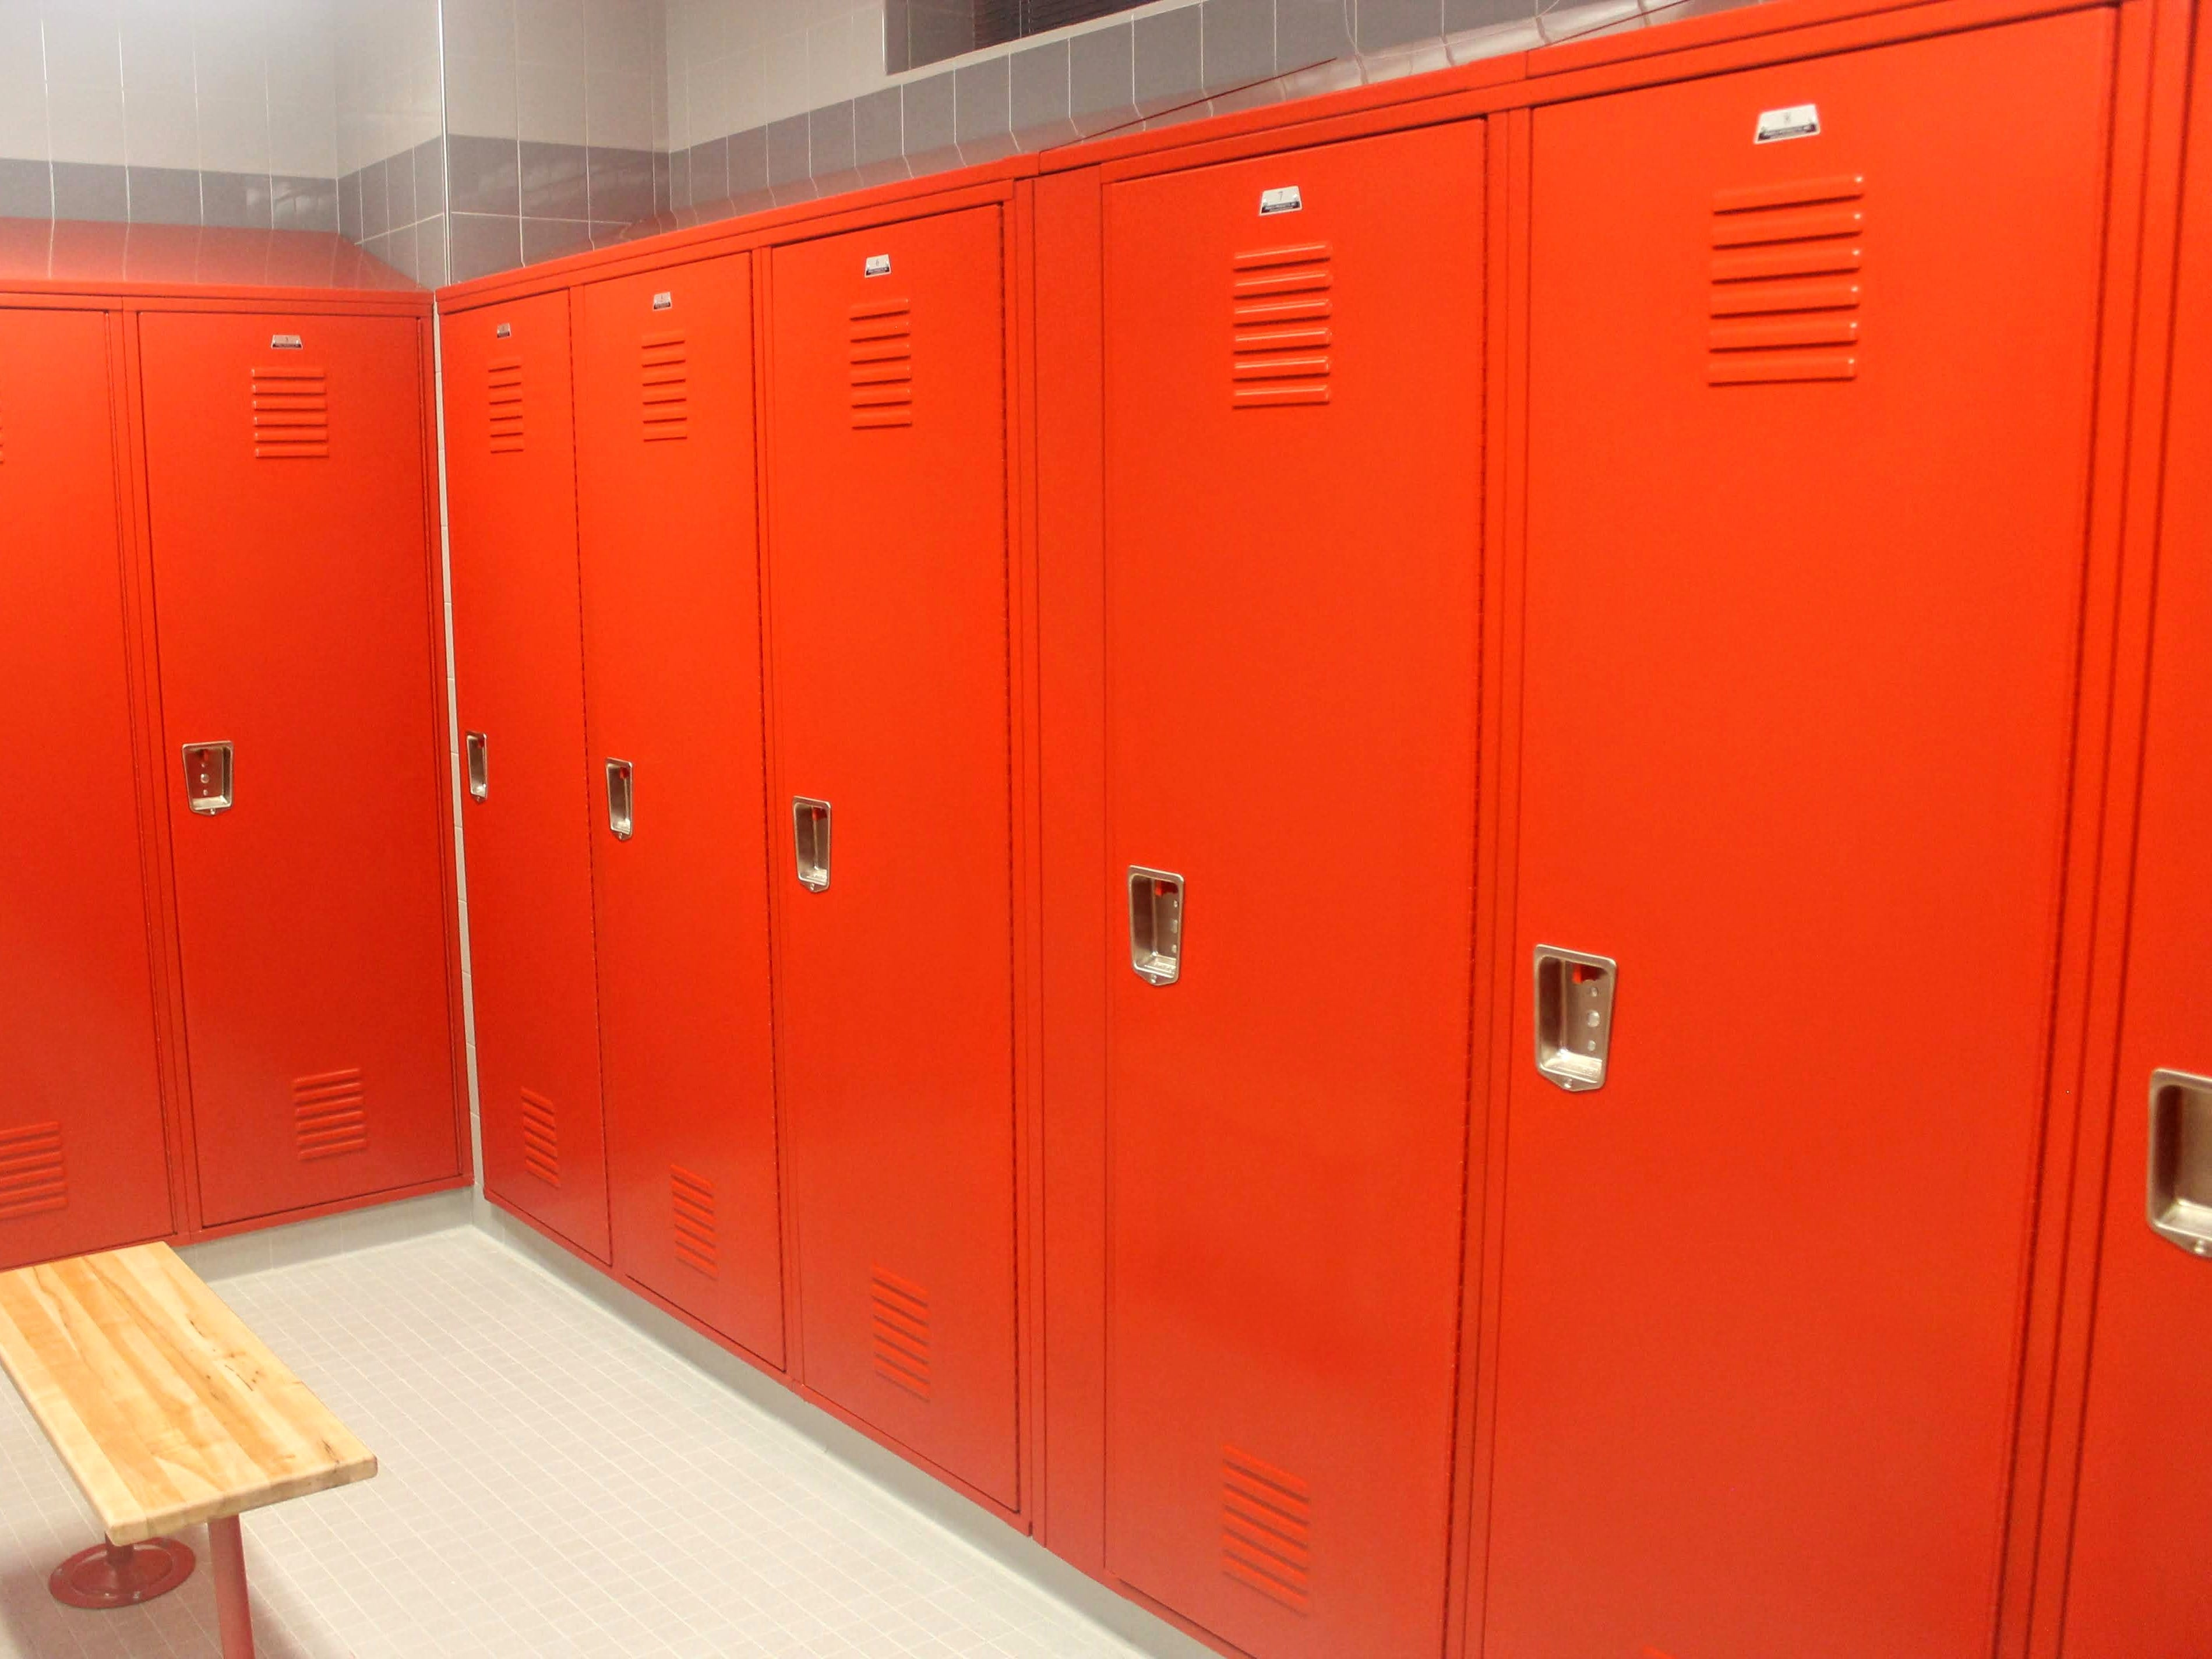 The men's locker room in the fire station. The new building has locker rooms for both male and female firefighters.